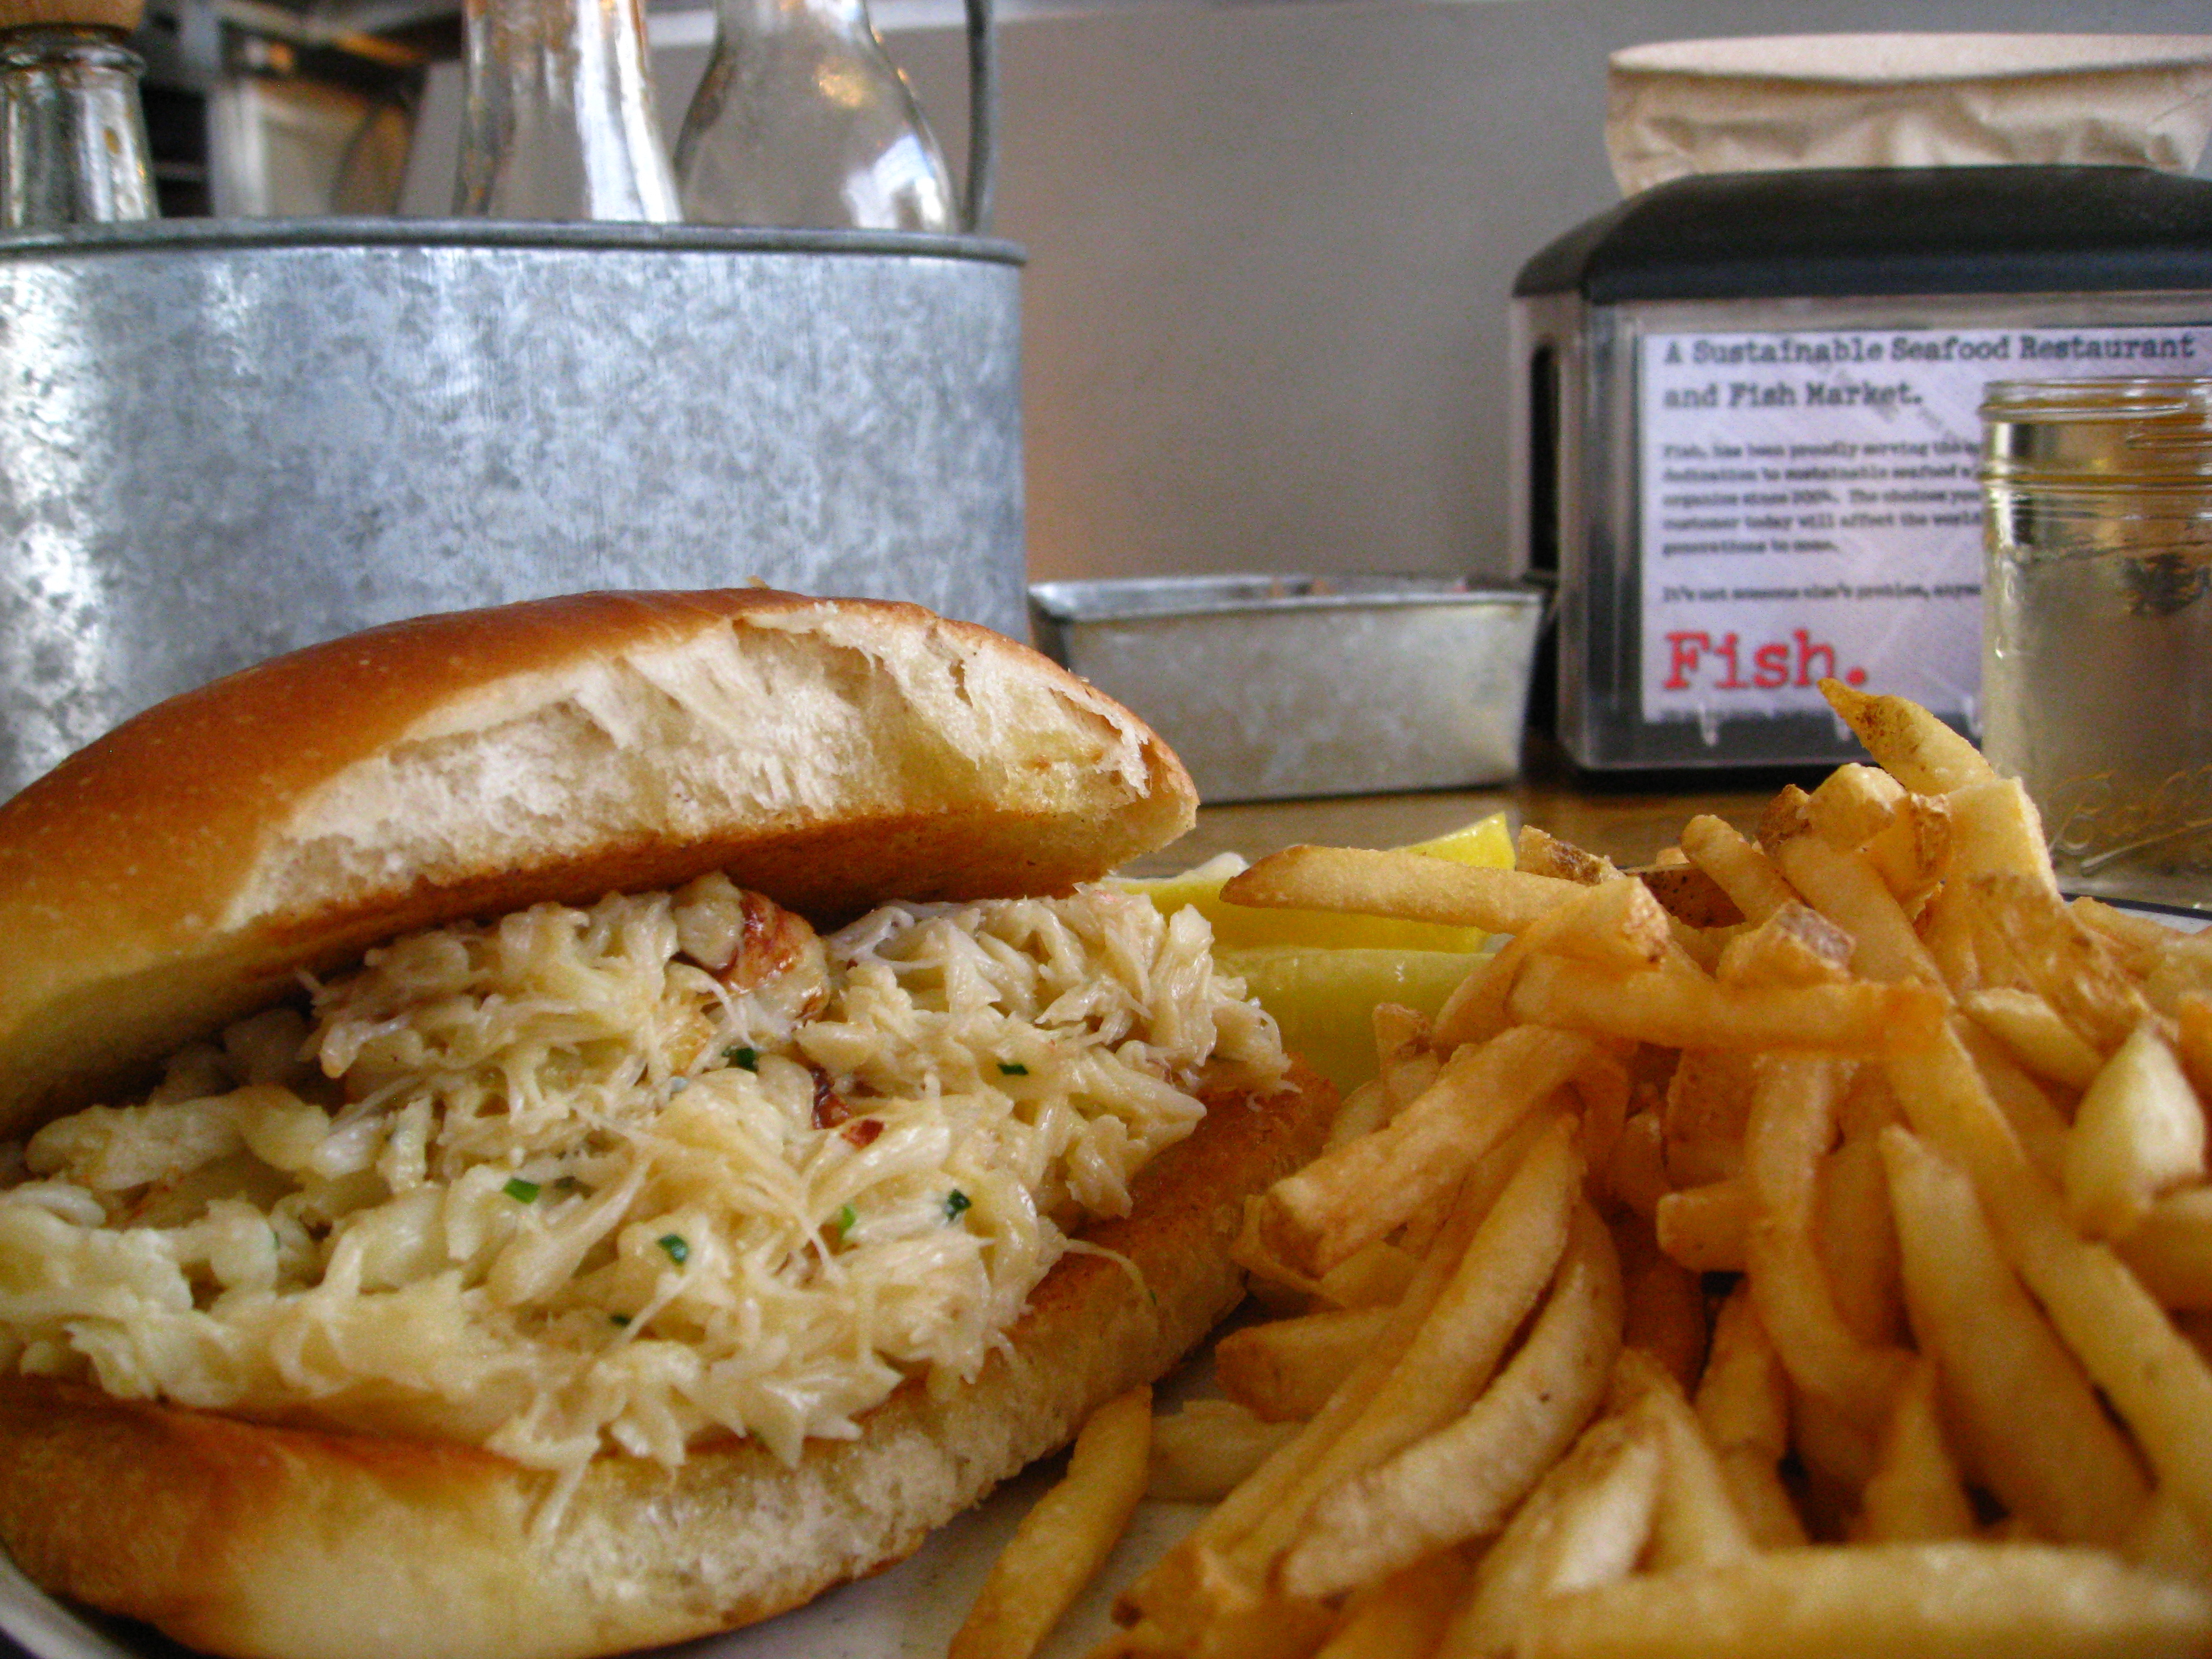 Fish. Dungeness Crab Sandwich